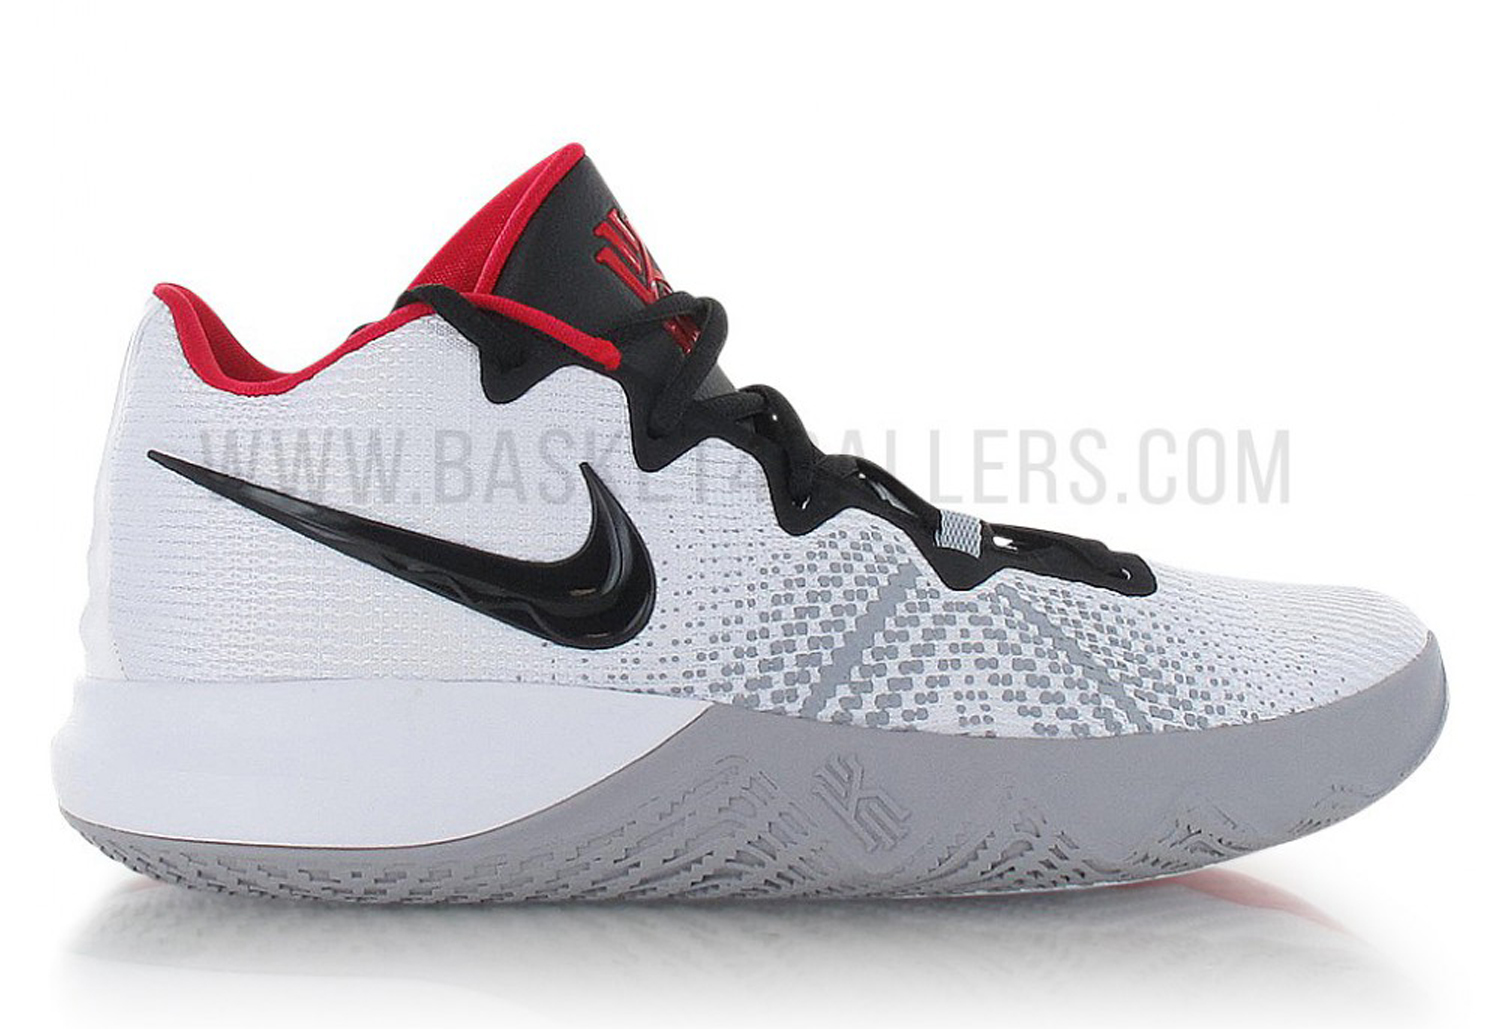 733a8585ccb6 ... denmark stay tuned for updates on the nike kyrie flytraps availability  stateside as eastbay should be